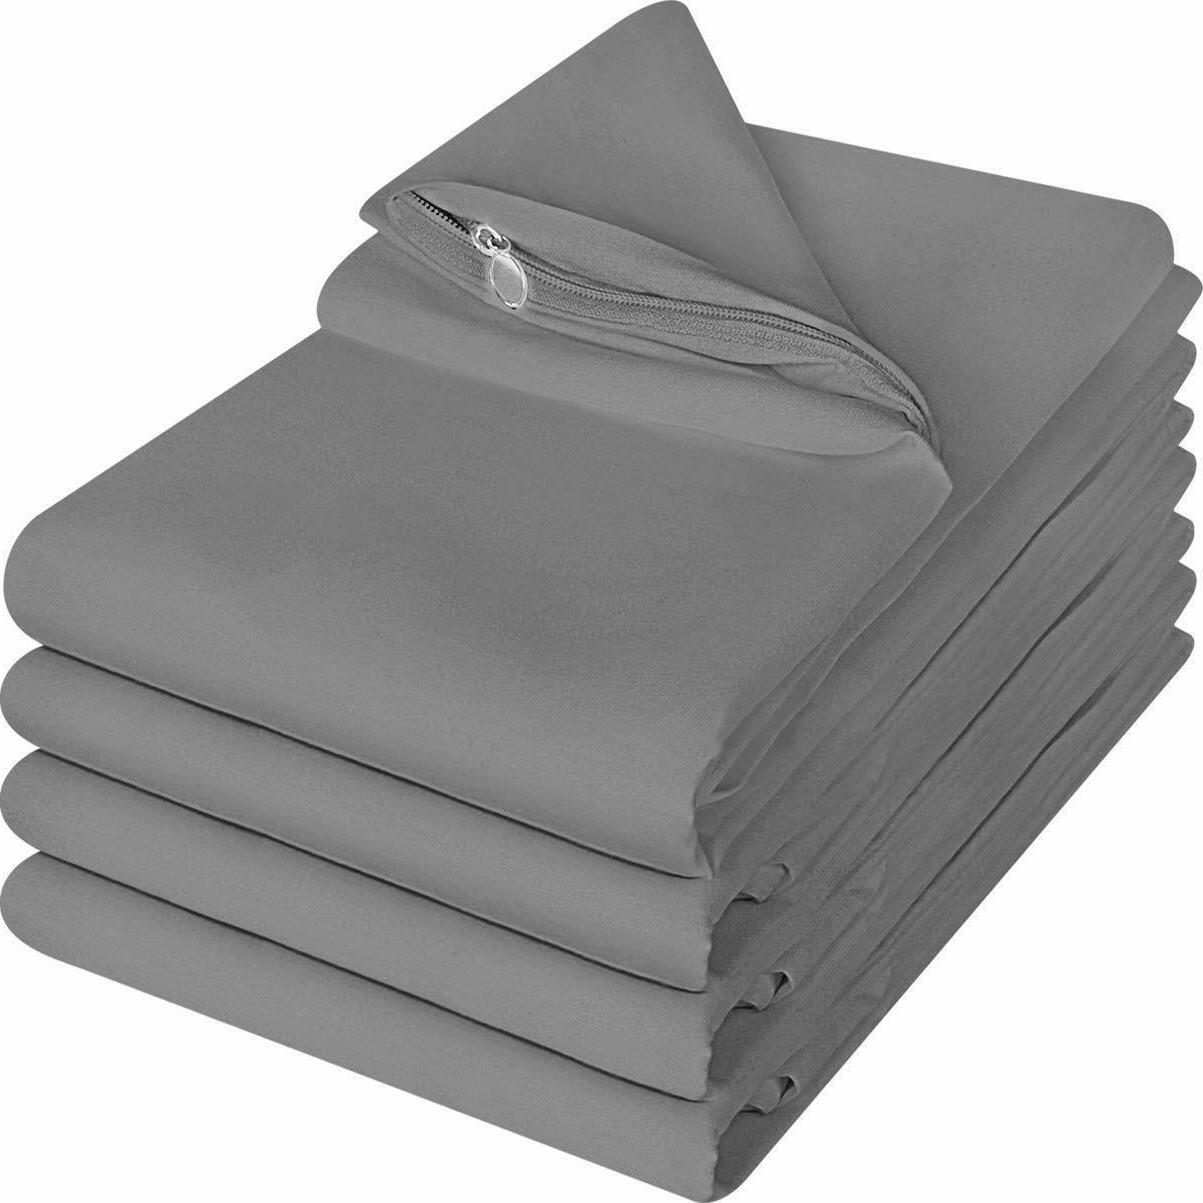 zippered pillow cases pillowcases cover brushed microfiber